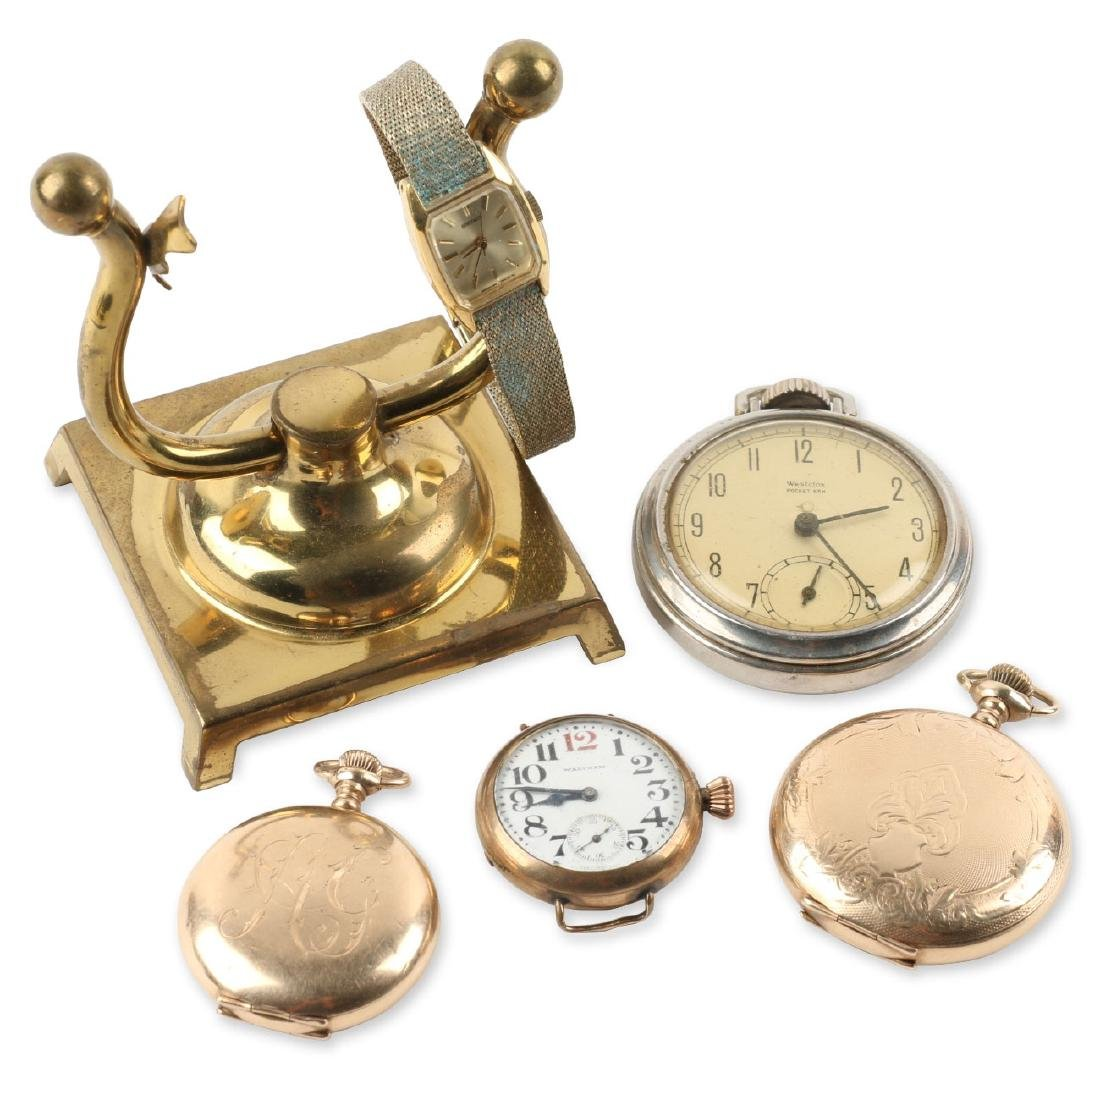 Assorted Lot of Six (6)Watches Incl. Brass Pocket Watch